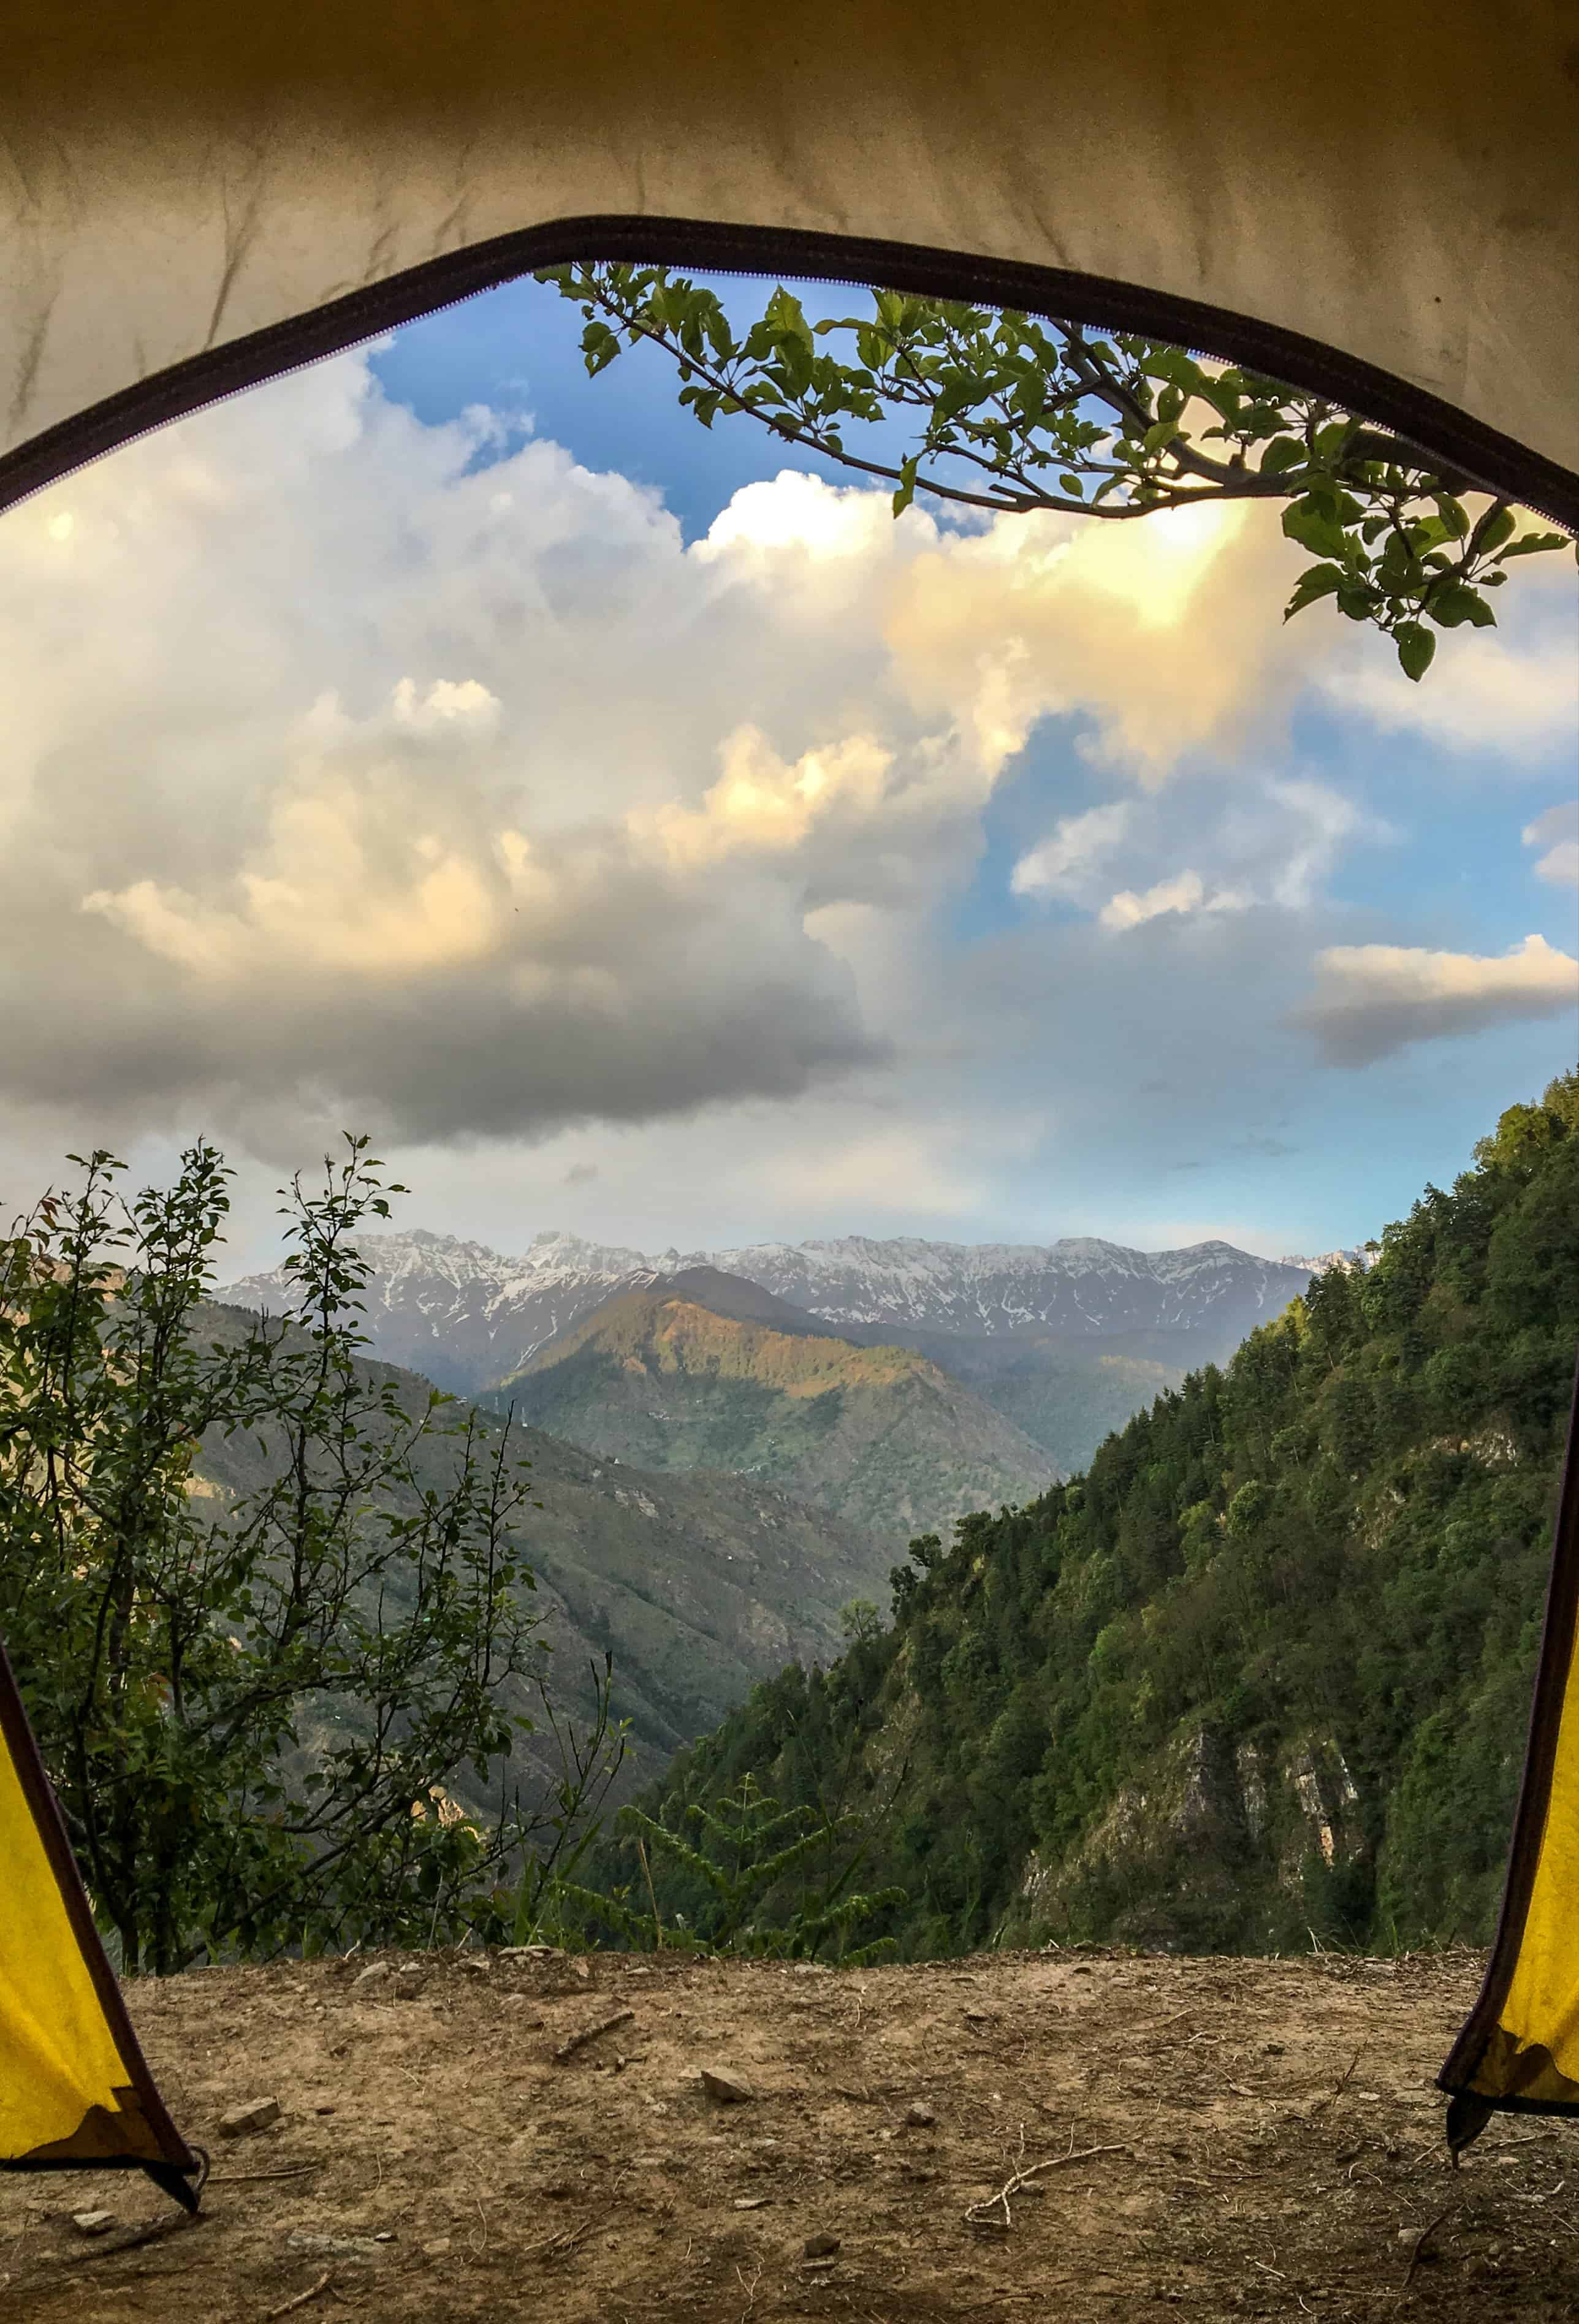 Morning view from the tent!